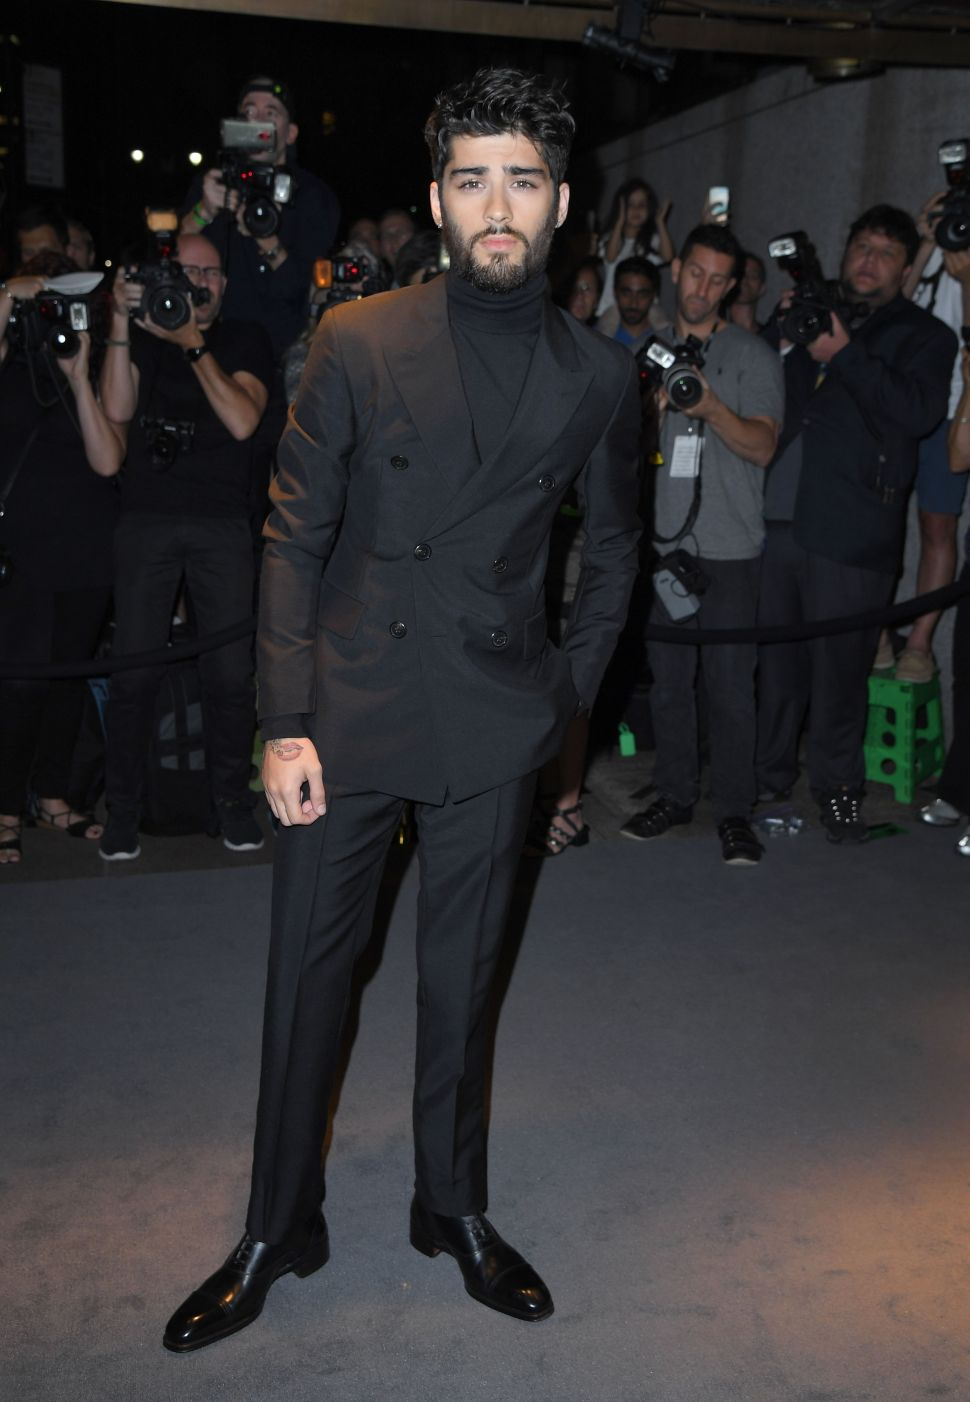 Zayn Malik's Collab With Versus Versace Is Off to a Rough Start